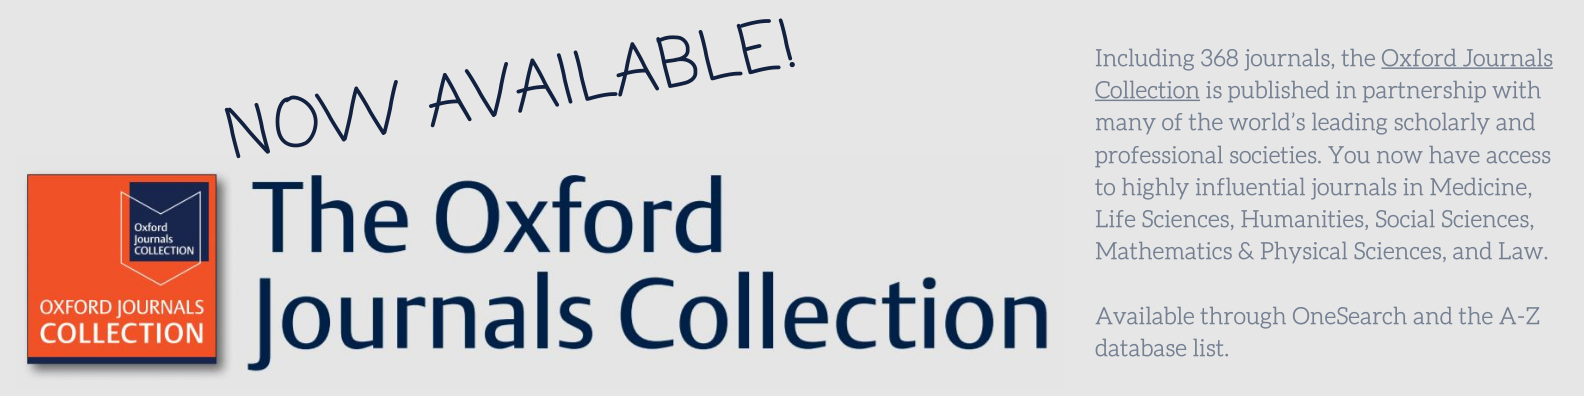 Graphic with text Now Available! Oxford Journals Collection Including 368 journals, the Oxford Journals Collection is published in partnership with many of the world's leading scholarly and professional societies. You now have access to highly influential journals in Medicine, Life Sciences, Humanities, Social Sciences, Mathematics & Physical Sciences, and Law.  Available through OneSearch and the A-Z database list.